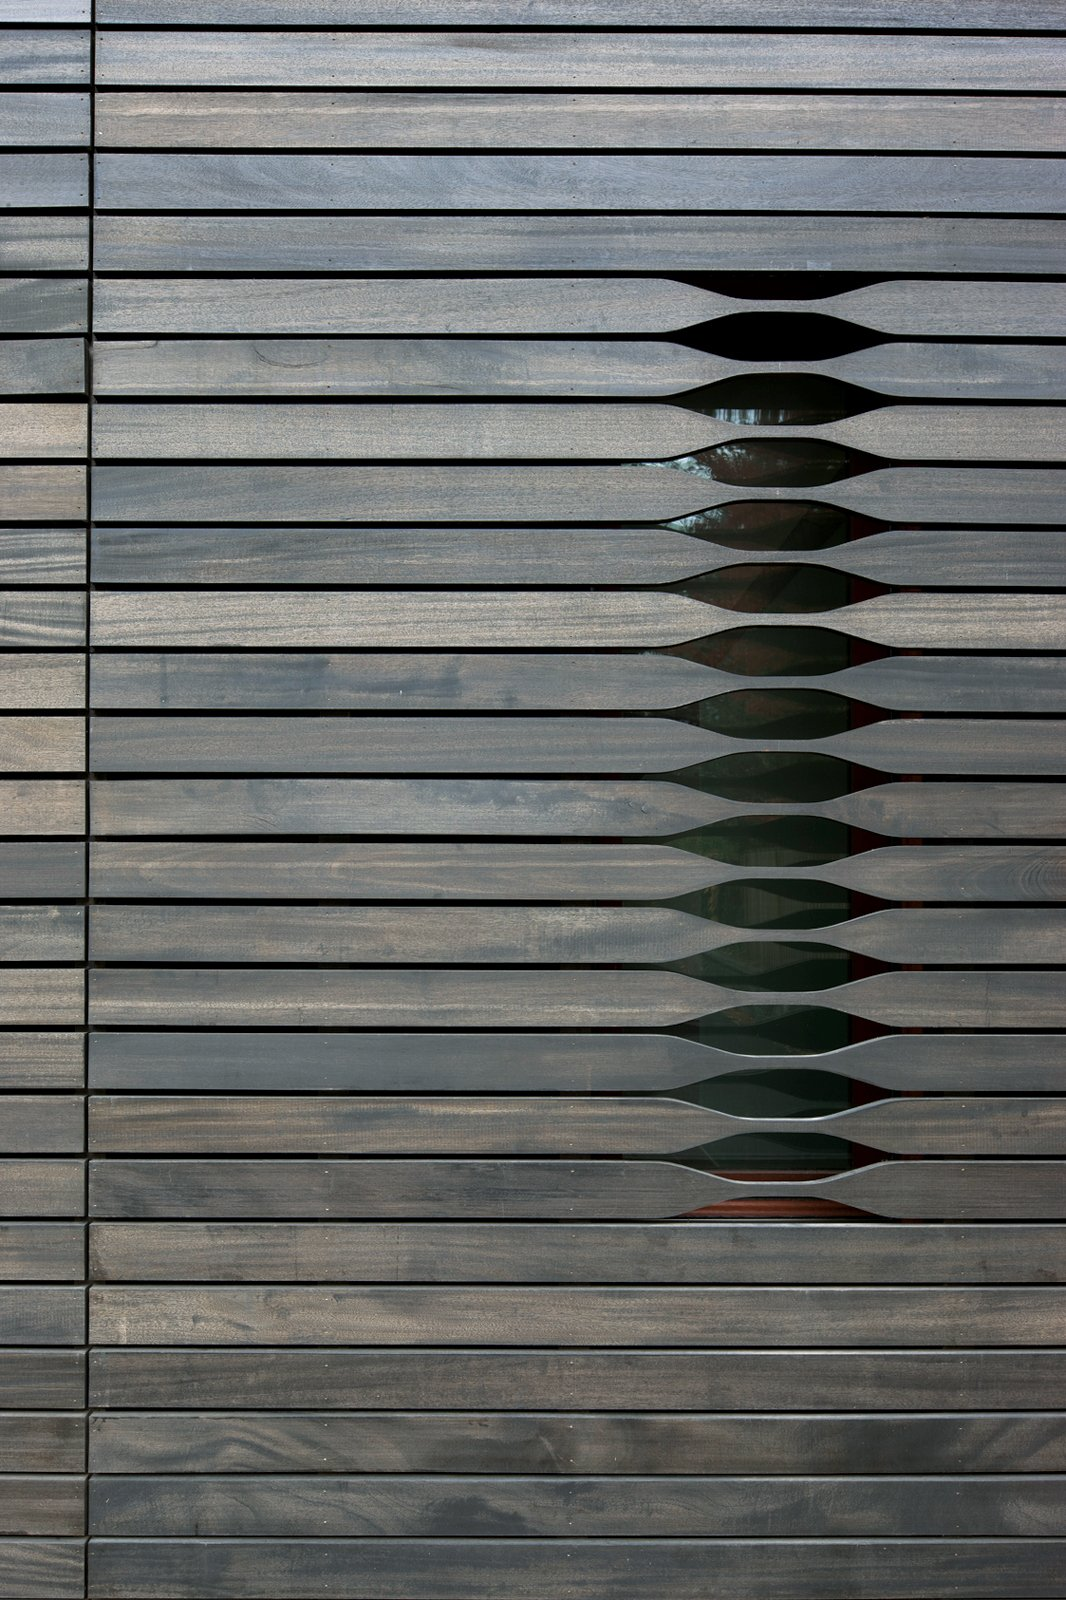 Photo 1 of 2 in Facade Focus: Wood